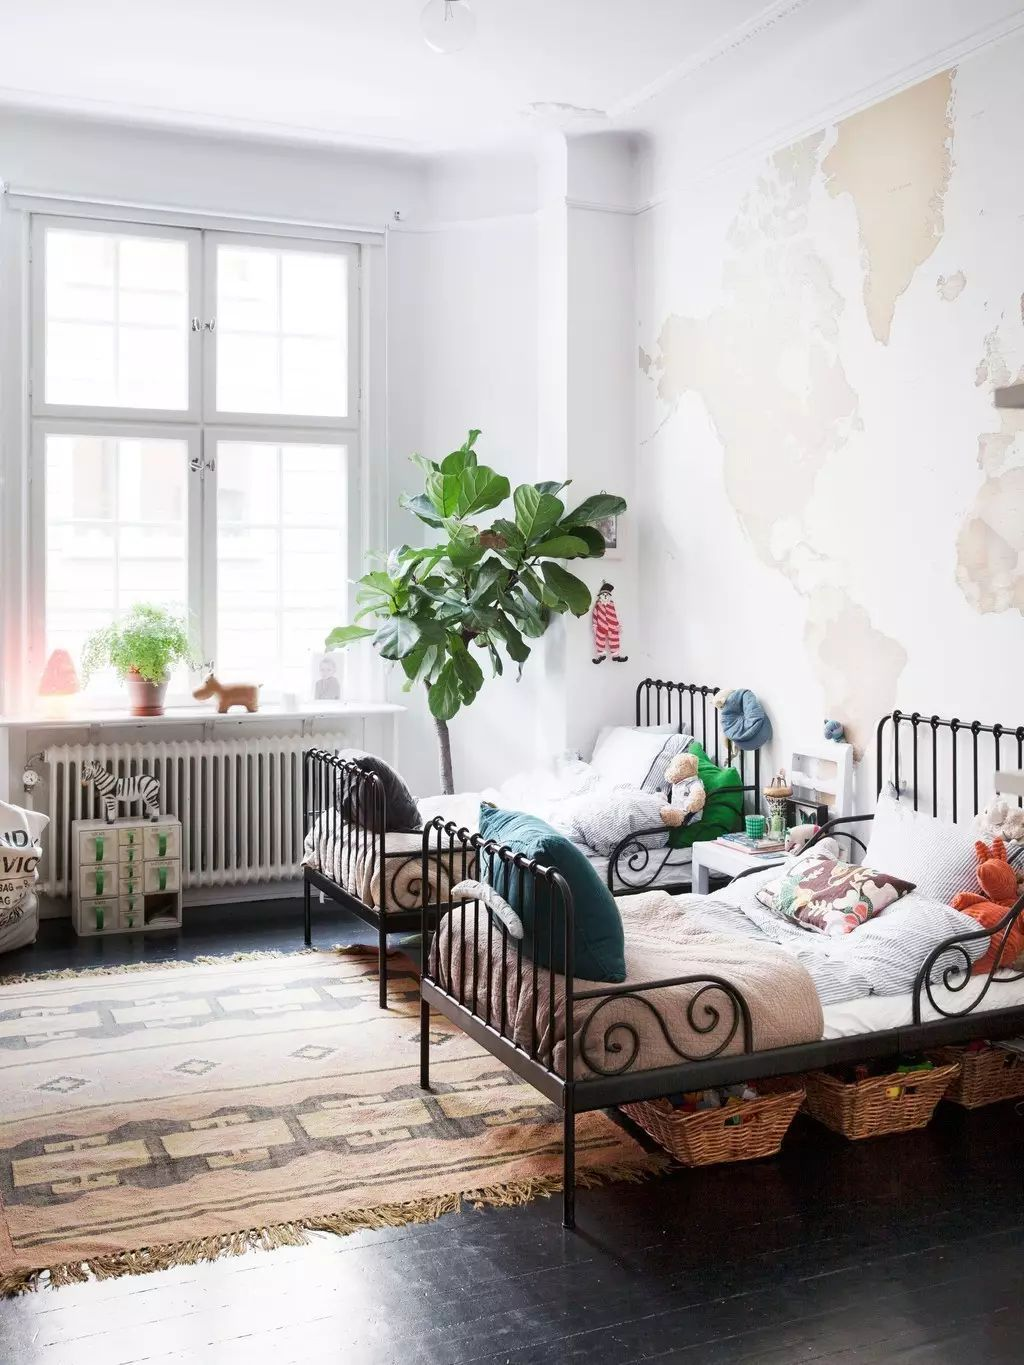 House Plants In Kids Rooms